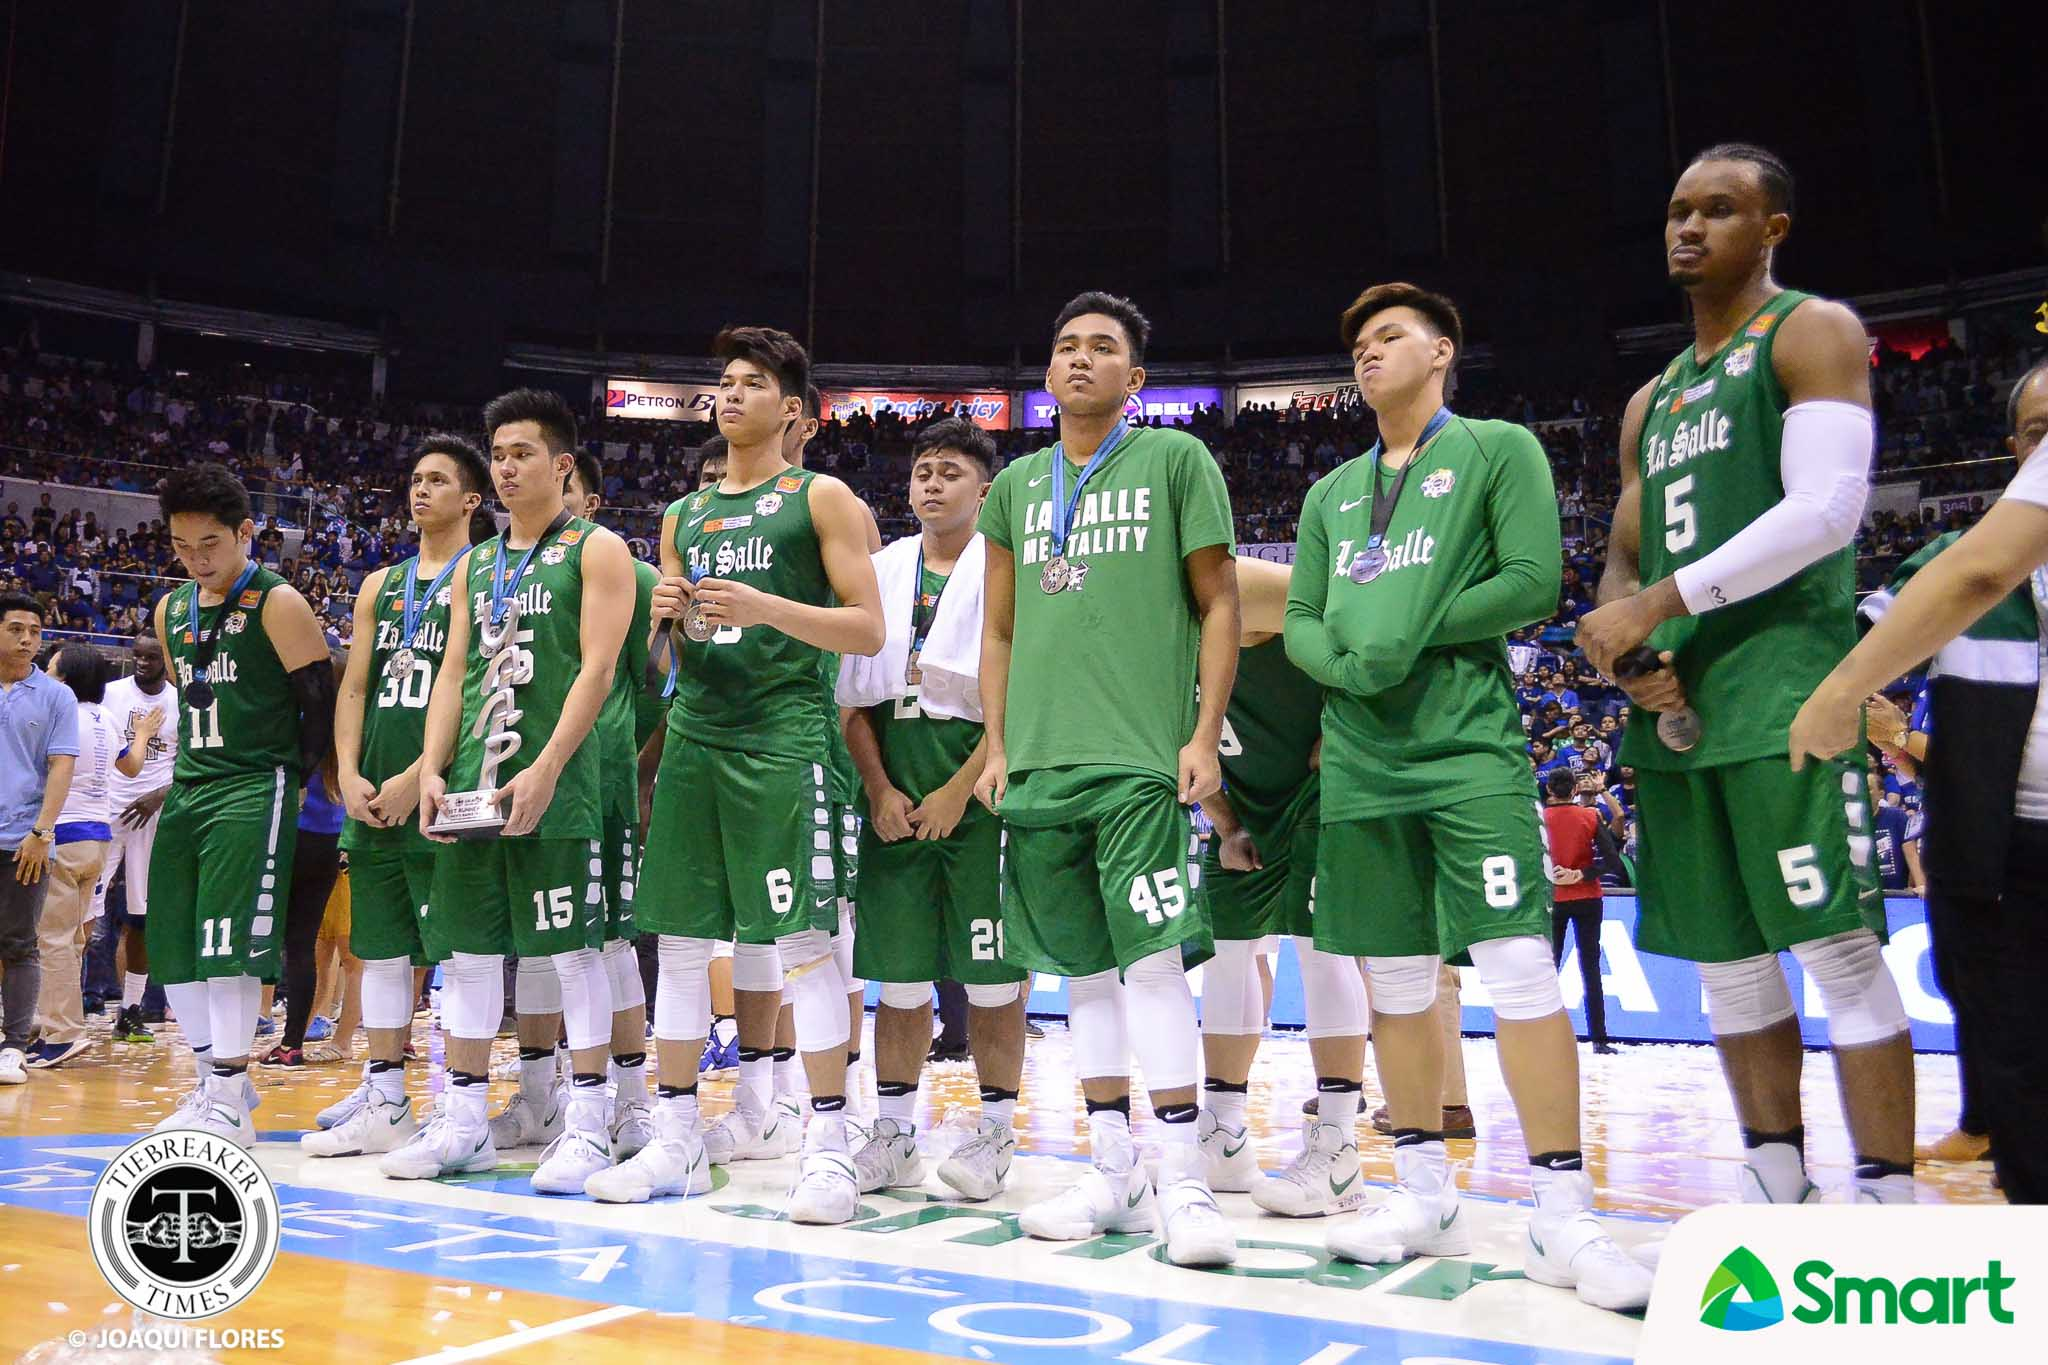 Philippine Sports News - Tiebreaker Times Ben Mbala reflects on Finals heartbreak: 'You can also learn by losing' Basketball DLSU News UAAP  UAAP Season 80 Men's Basketball UAAP Season 80 DLSU Men's Basketball Ben Mbala